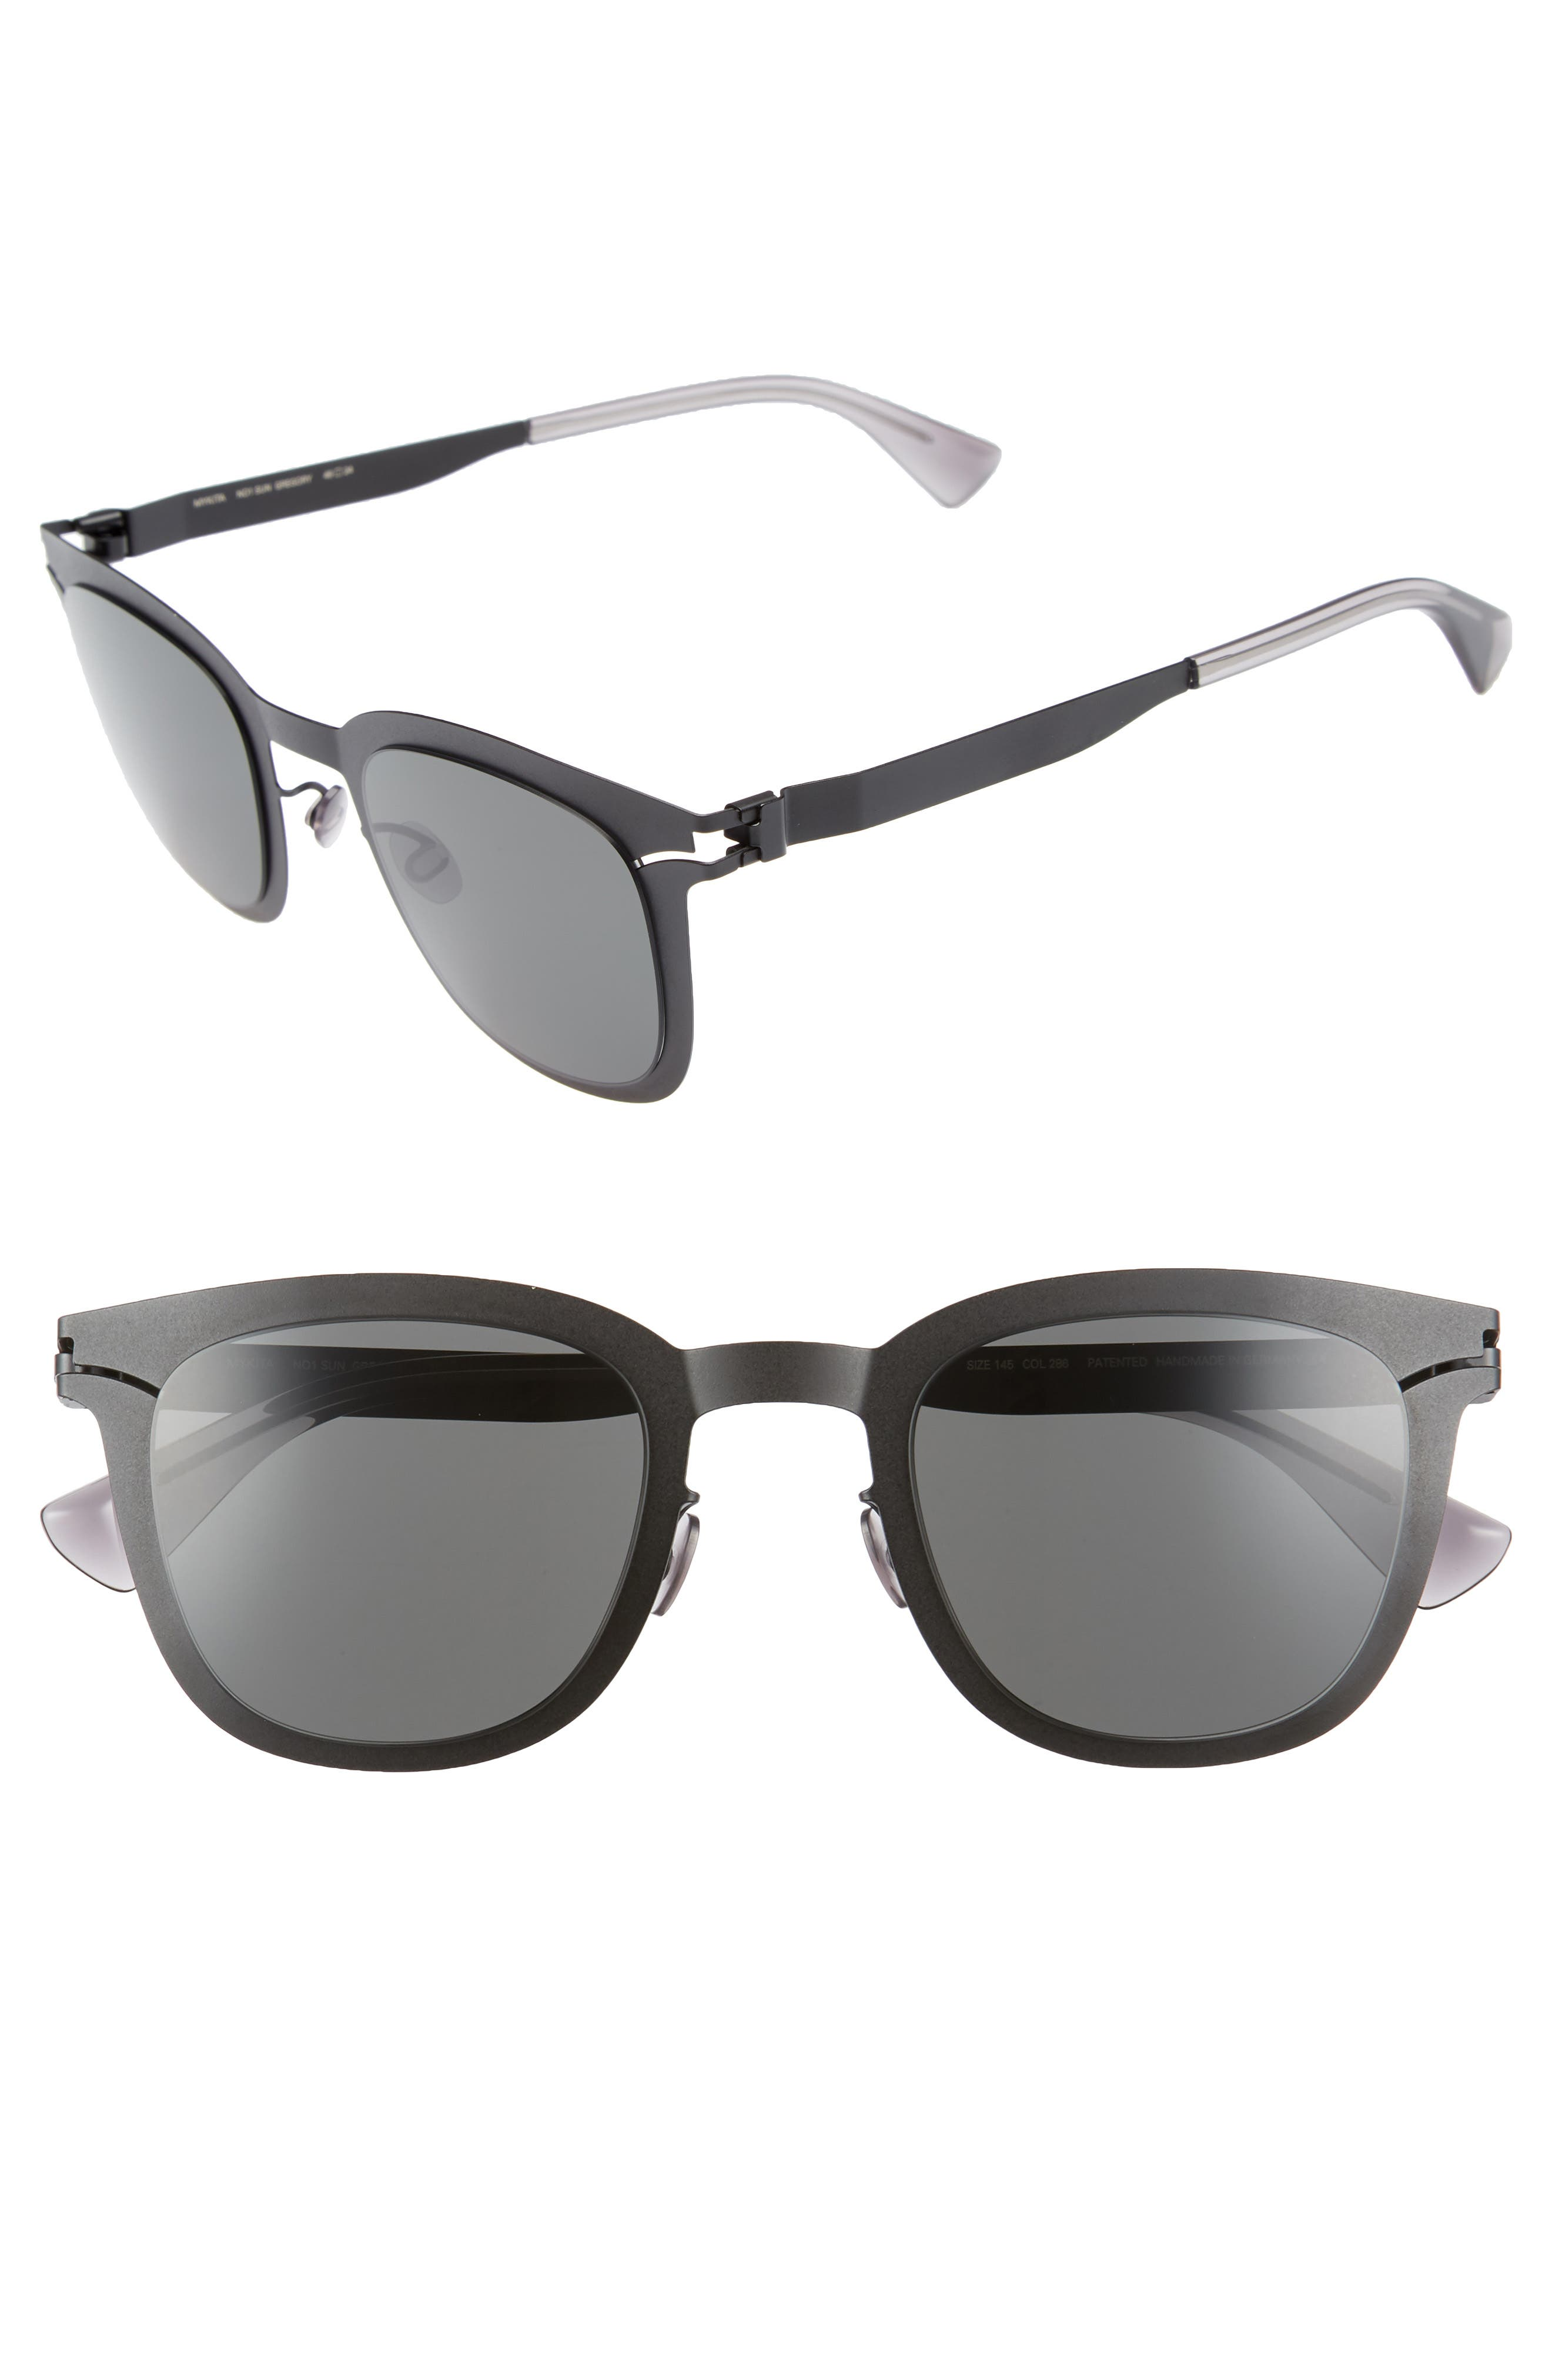 Gregory 49mm Sunglasses,                             Main thumbnail 1, color,                             001